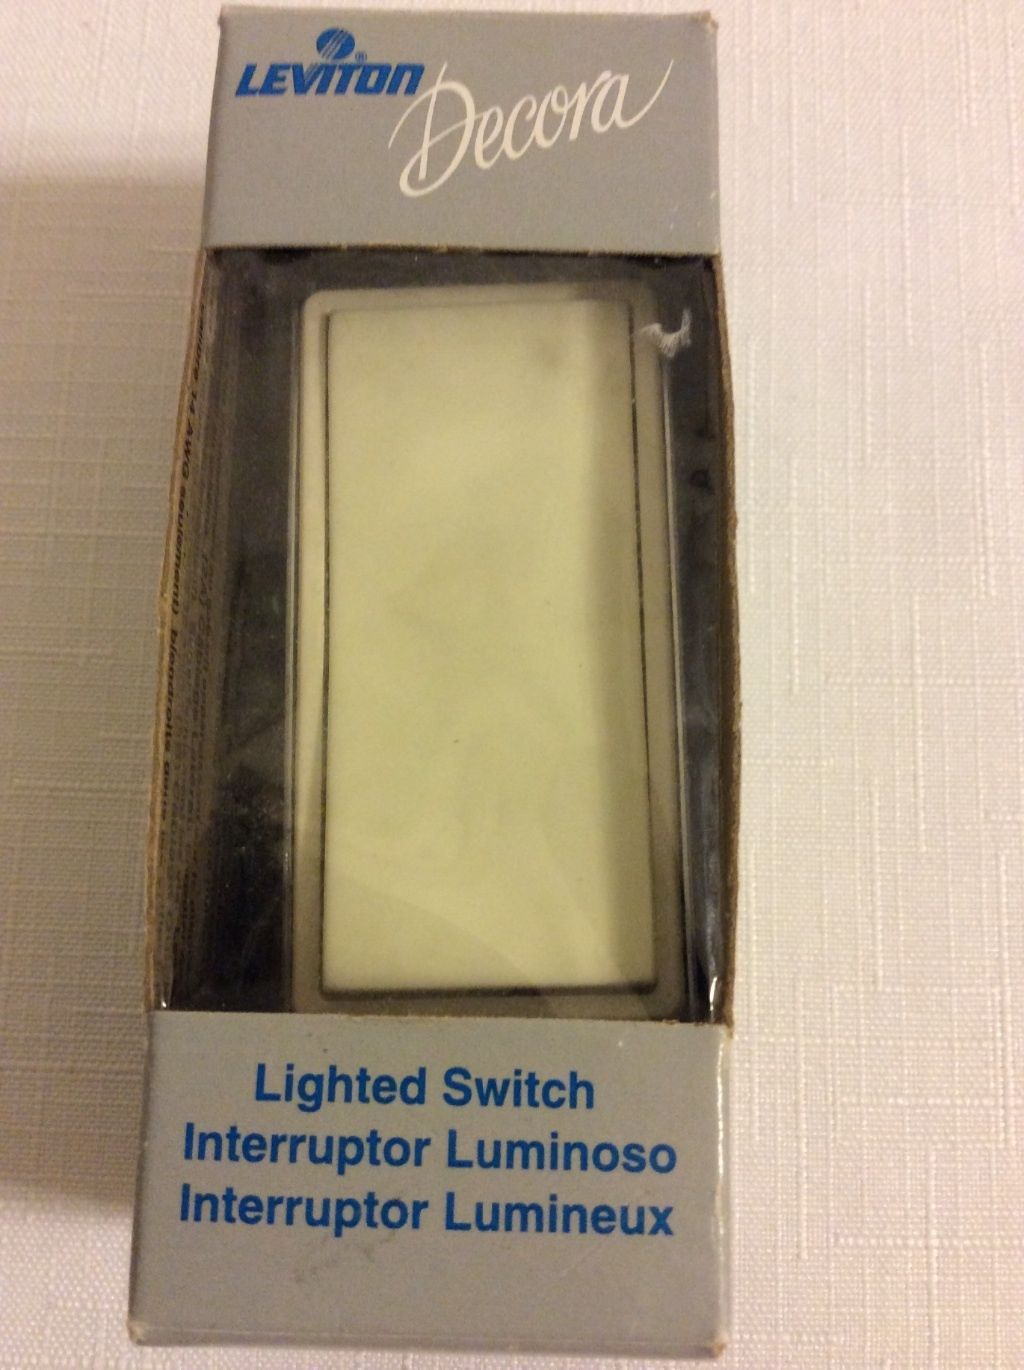 Leviton Lighted Switch Almond Decora Type and 50 similar items